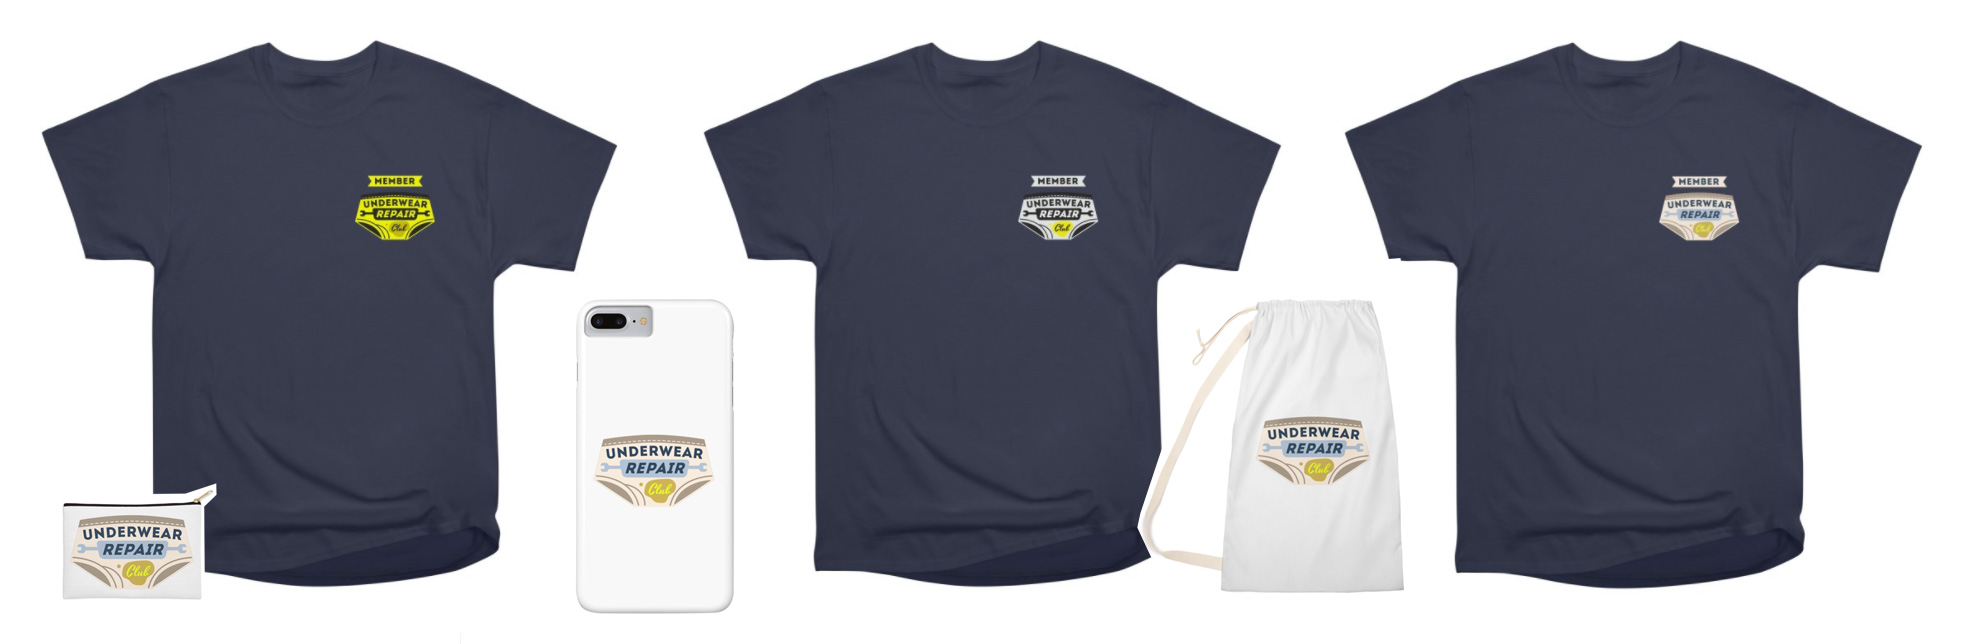 underwear repair club merchandiese: iphone cases, zip pouches, laundry bags, t-shirts